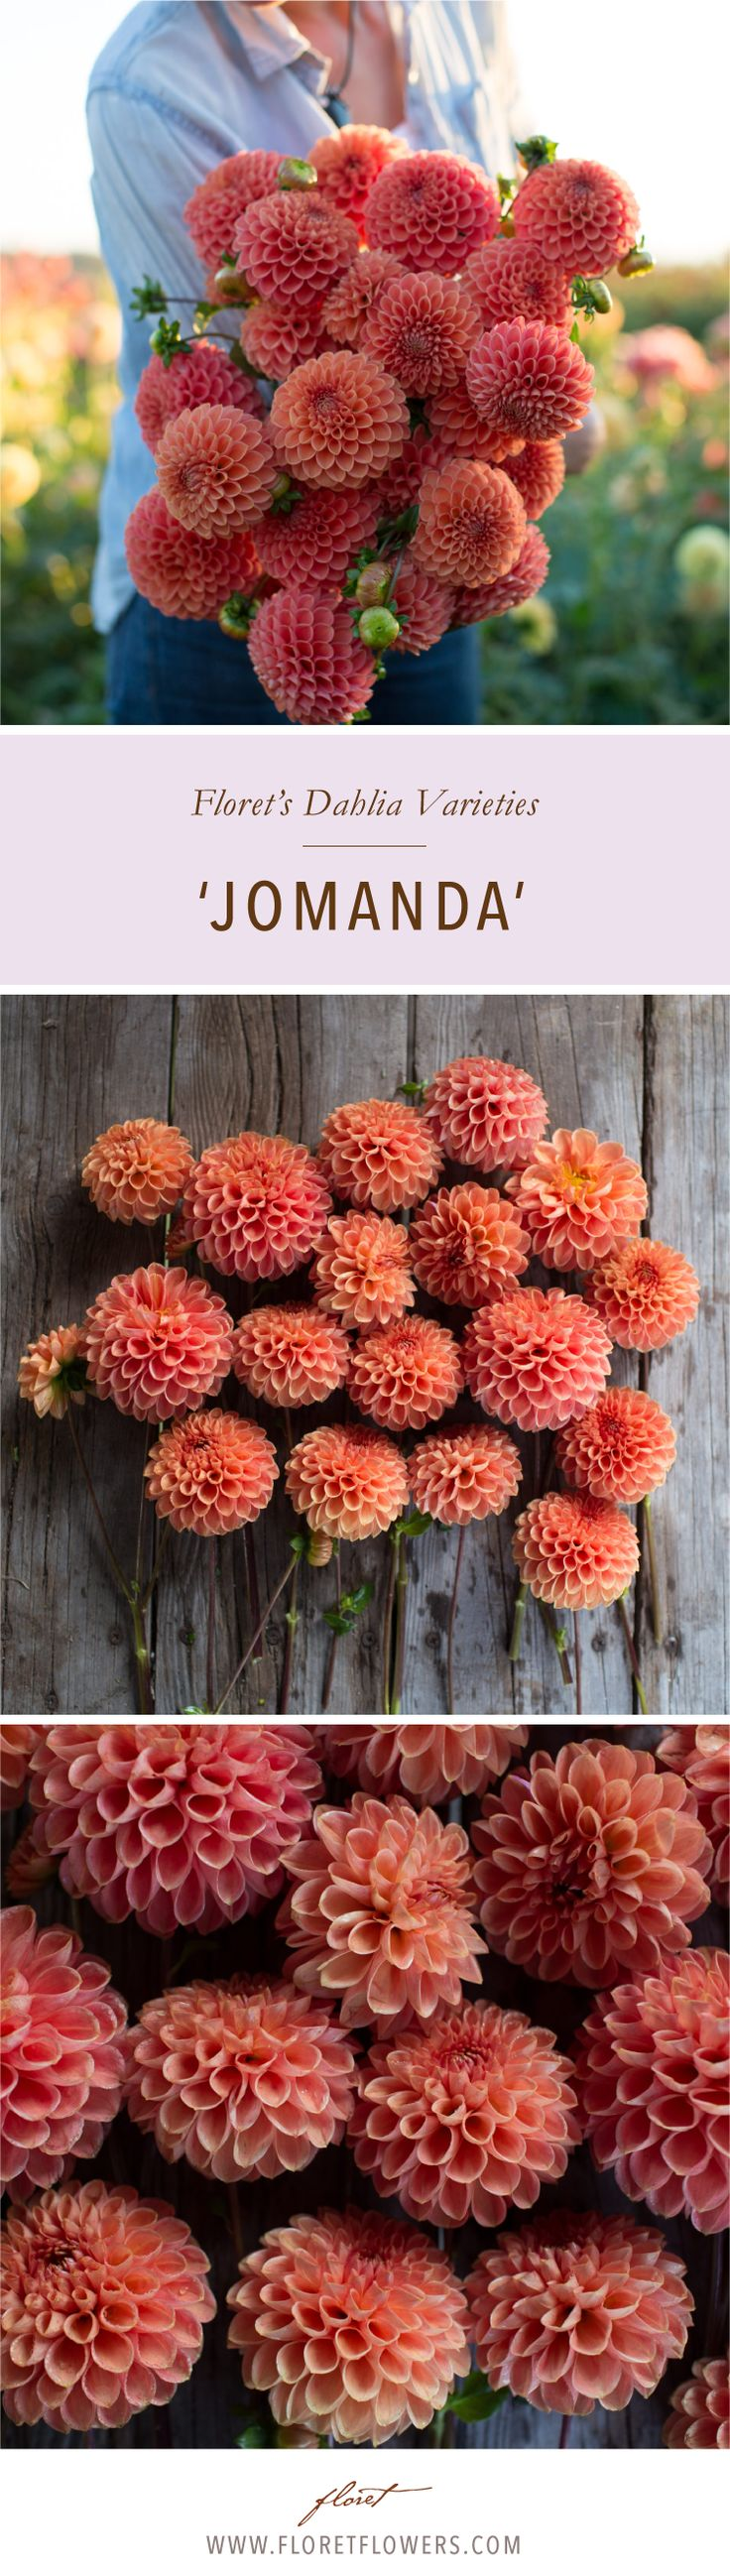 'Jomanda' is a beautiful dahlia in a rich, rusty orange with contrasting dark stems. Ball-shaped, 4 inch blooms are both beautiful and long-lasting, making them a favorite with our market customers. Dahlia tubers available from Floret.  #growfloret